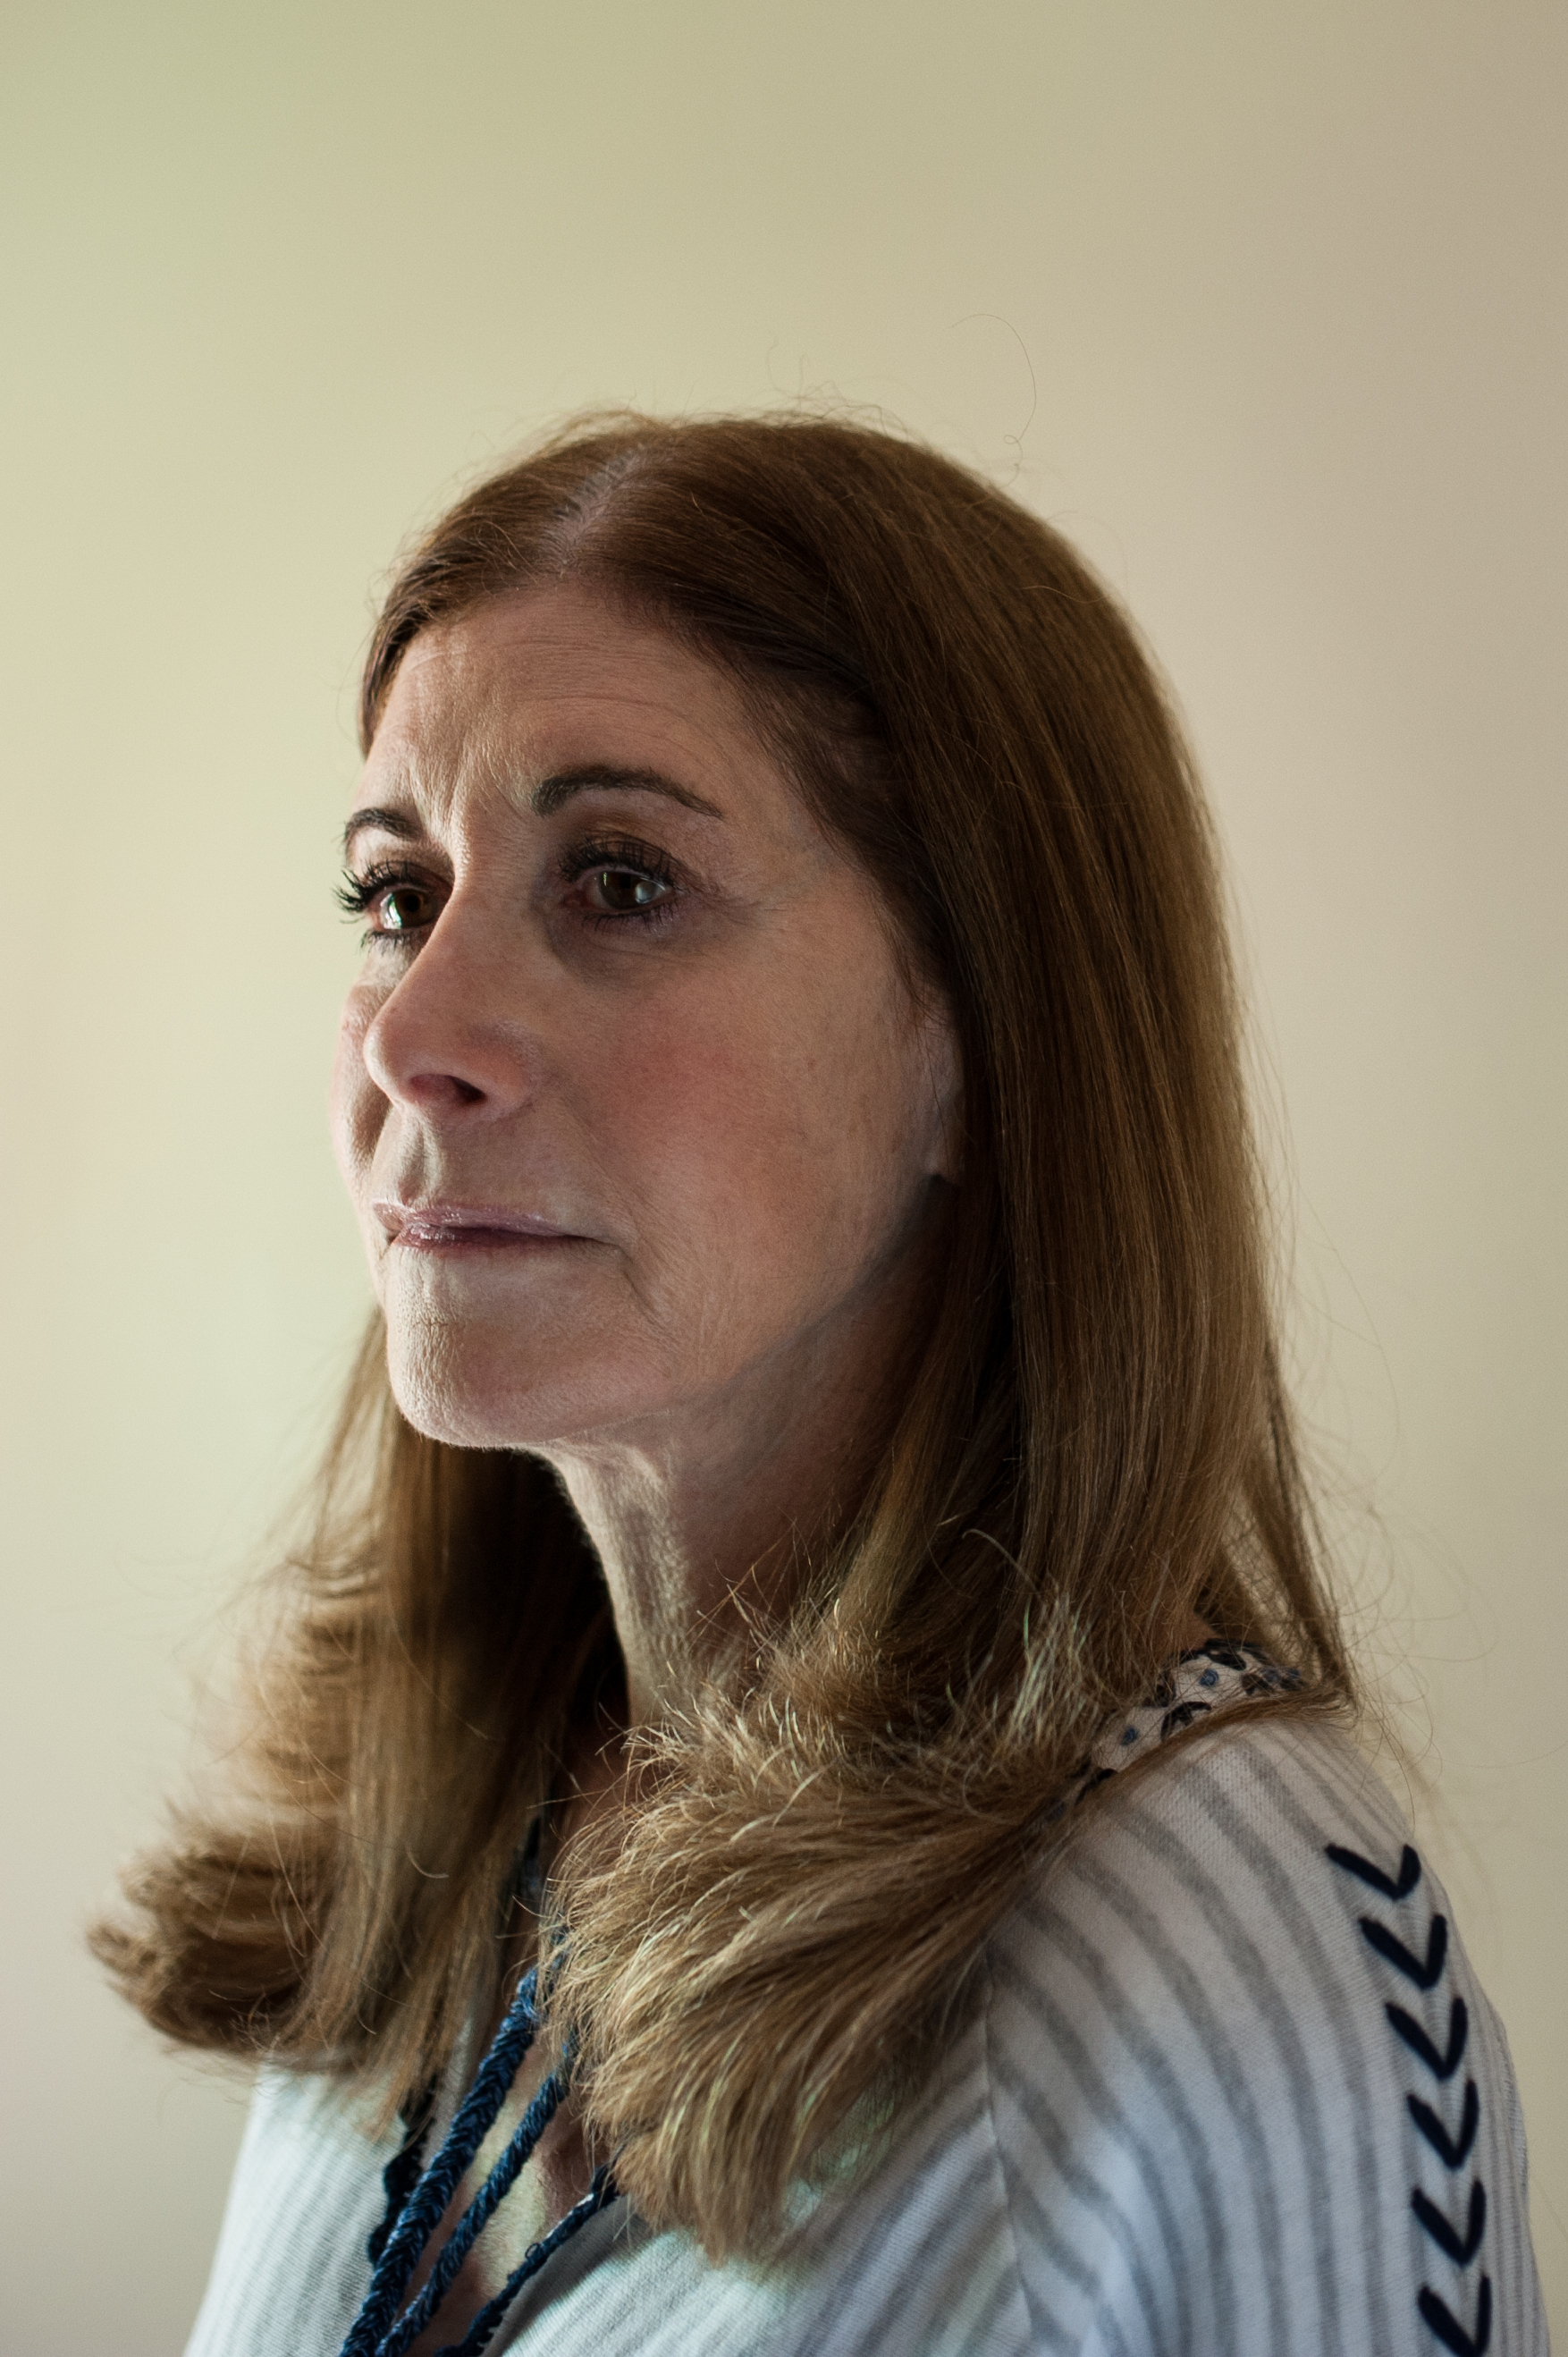 Linda Schulman at her home in Dix Hills, NY May 2018. Schulman's son, Scott Beigel, was a geography teacher and cross country coach who was one of 17 people killed in the mass shooting at Marjory Stoneman Douglas High School on February 14, 2018. Photographed for ESPN